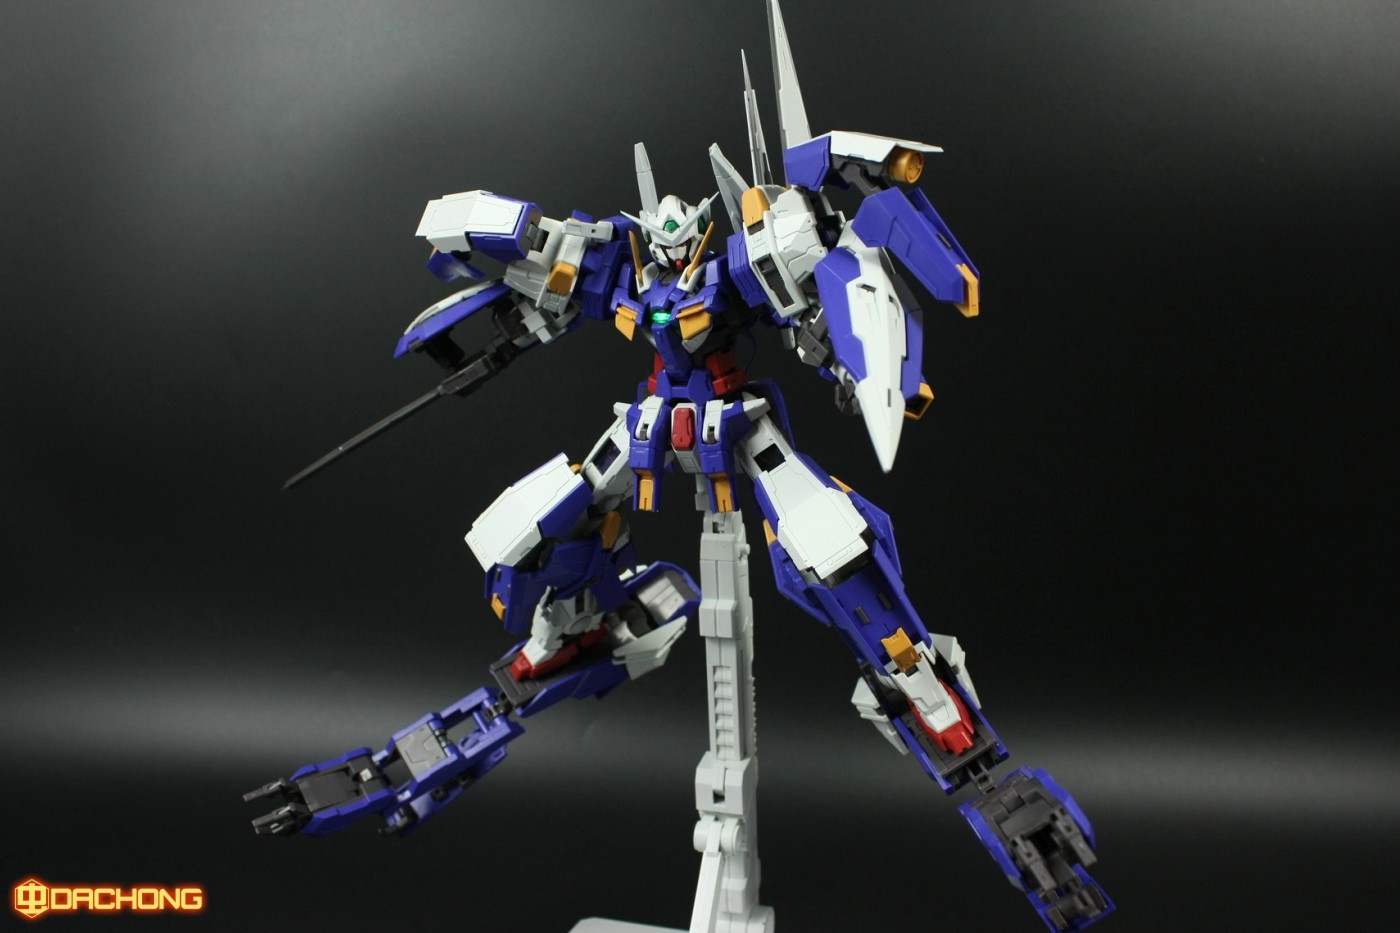 S254_MG_exia_HS_review_inask_085.jpg